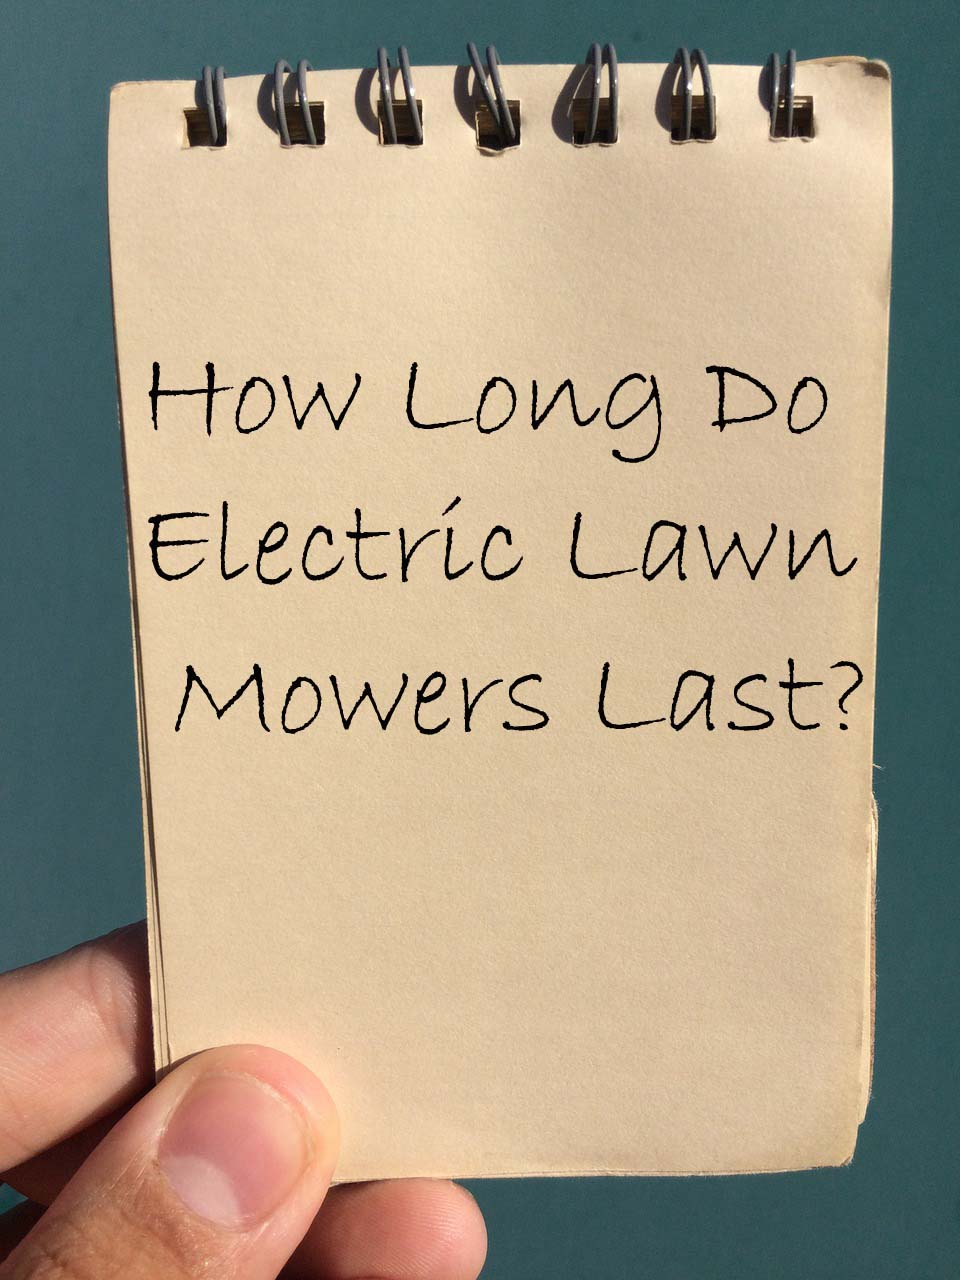 How long to electric lawn mowers last